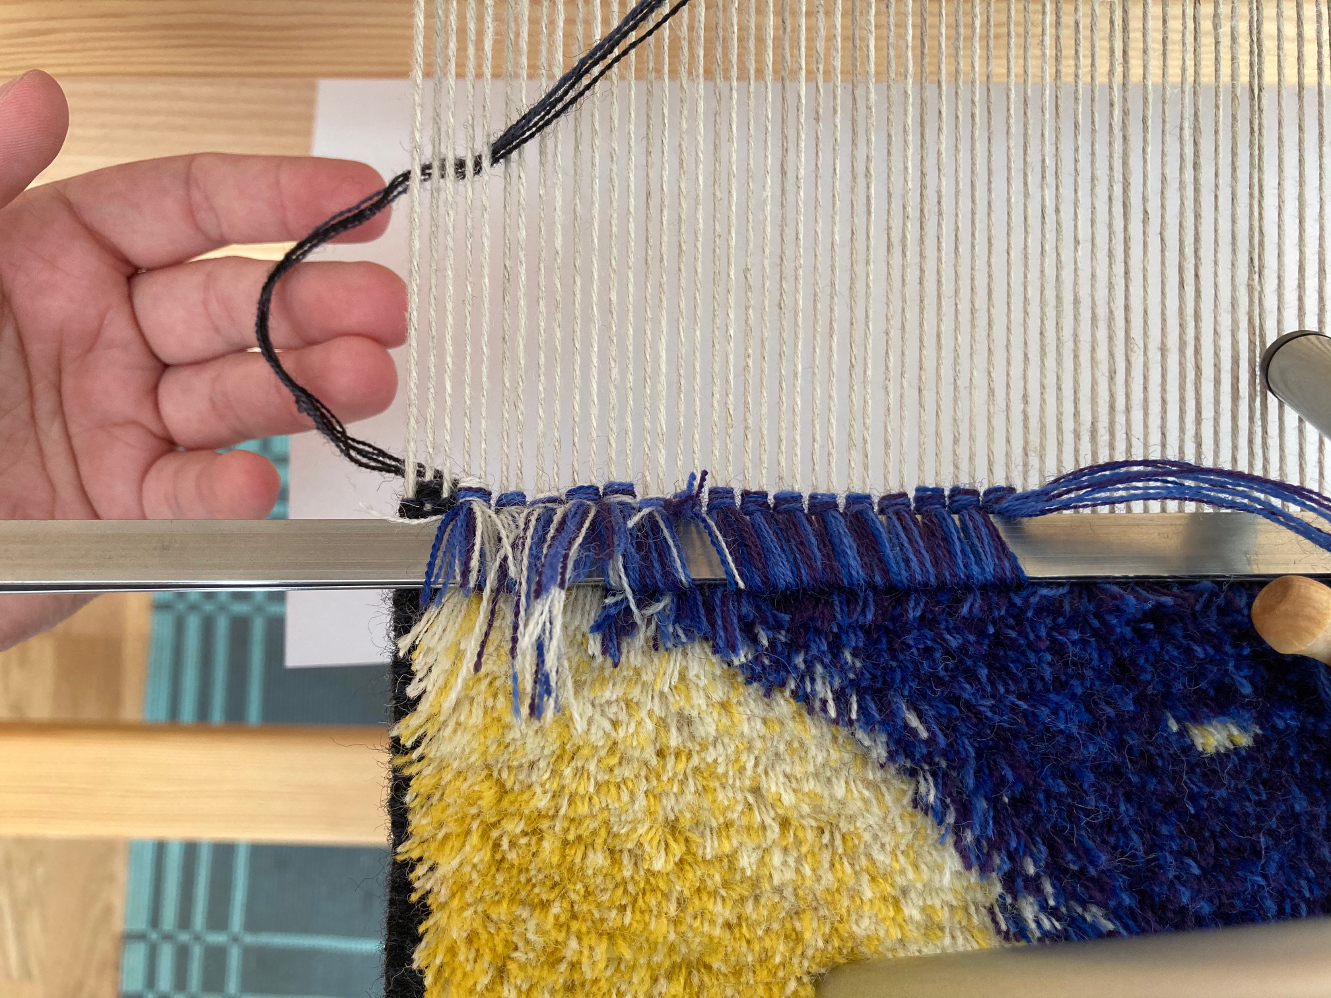 A carpet warp seen from the top, showing a ground weft loop pulled down between warp ends.